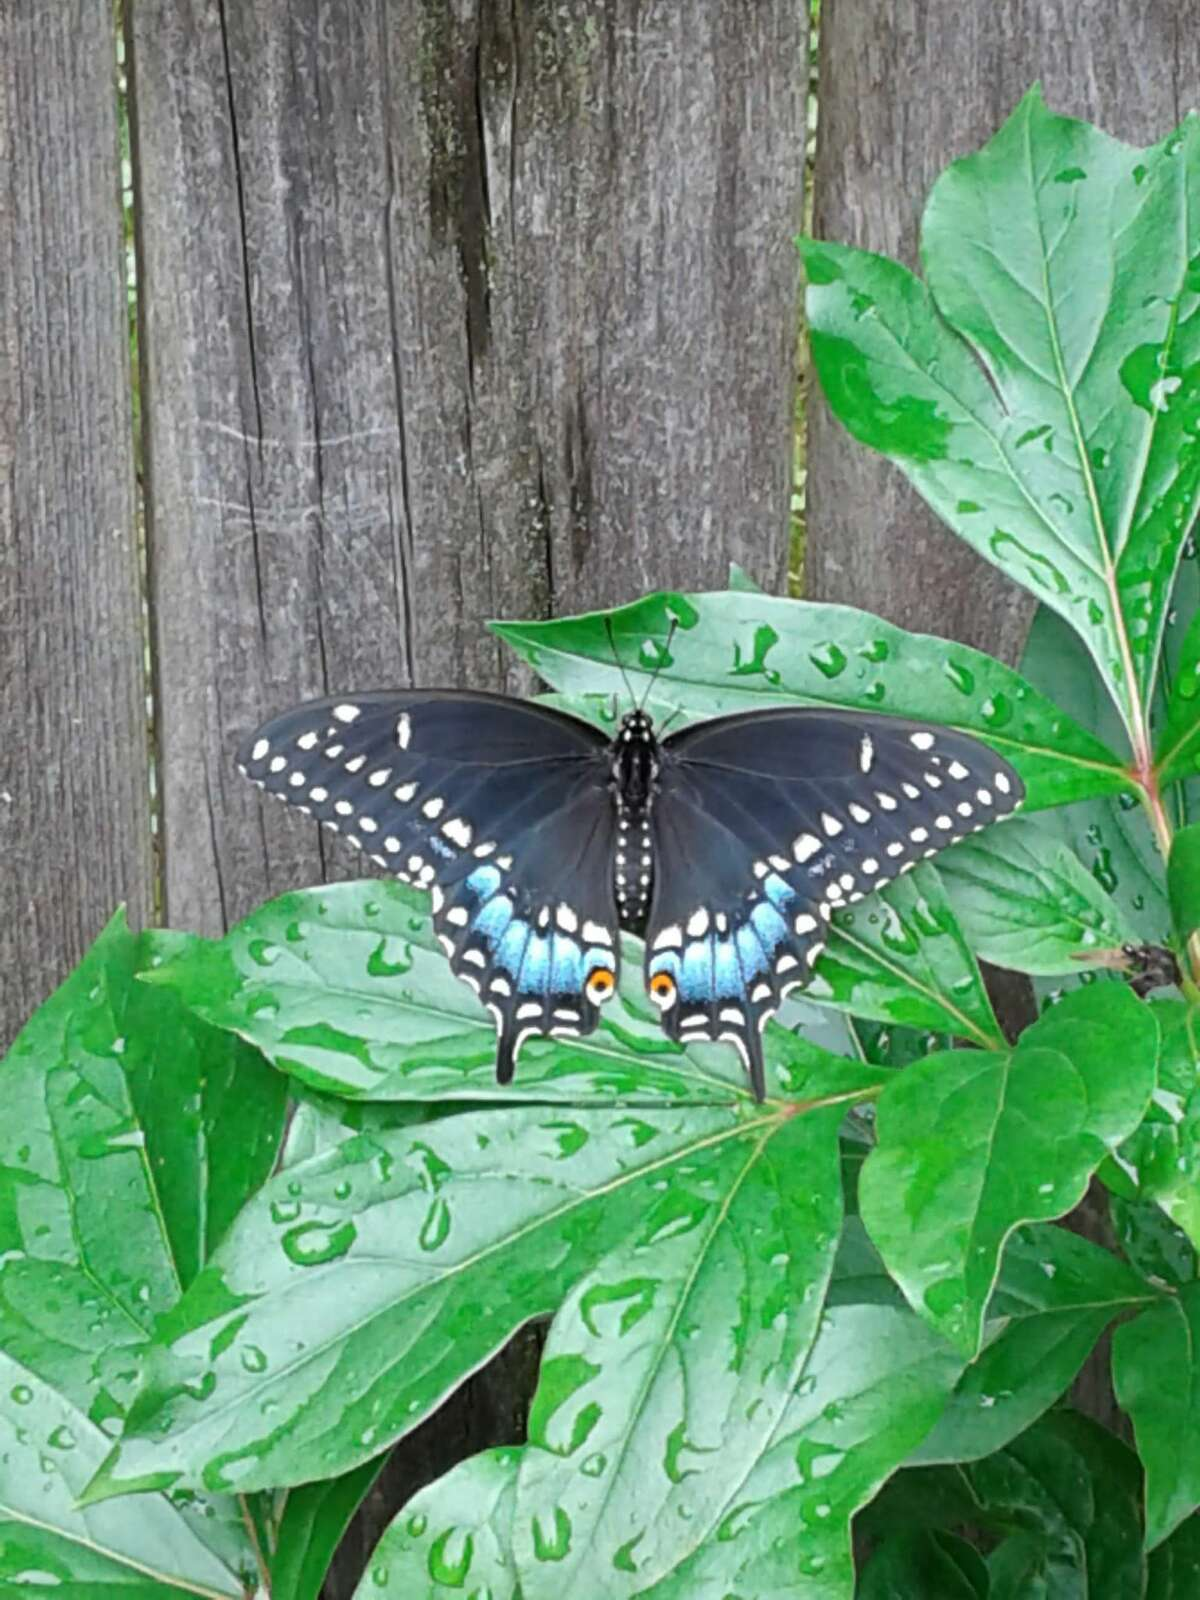 We were lucky to be host for this black swallowtail in our garden in Watervliet, says Dawn O'Connor